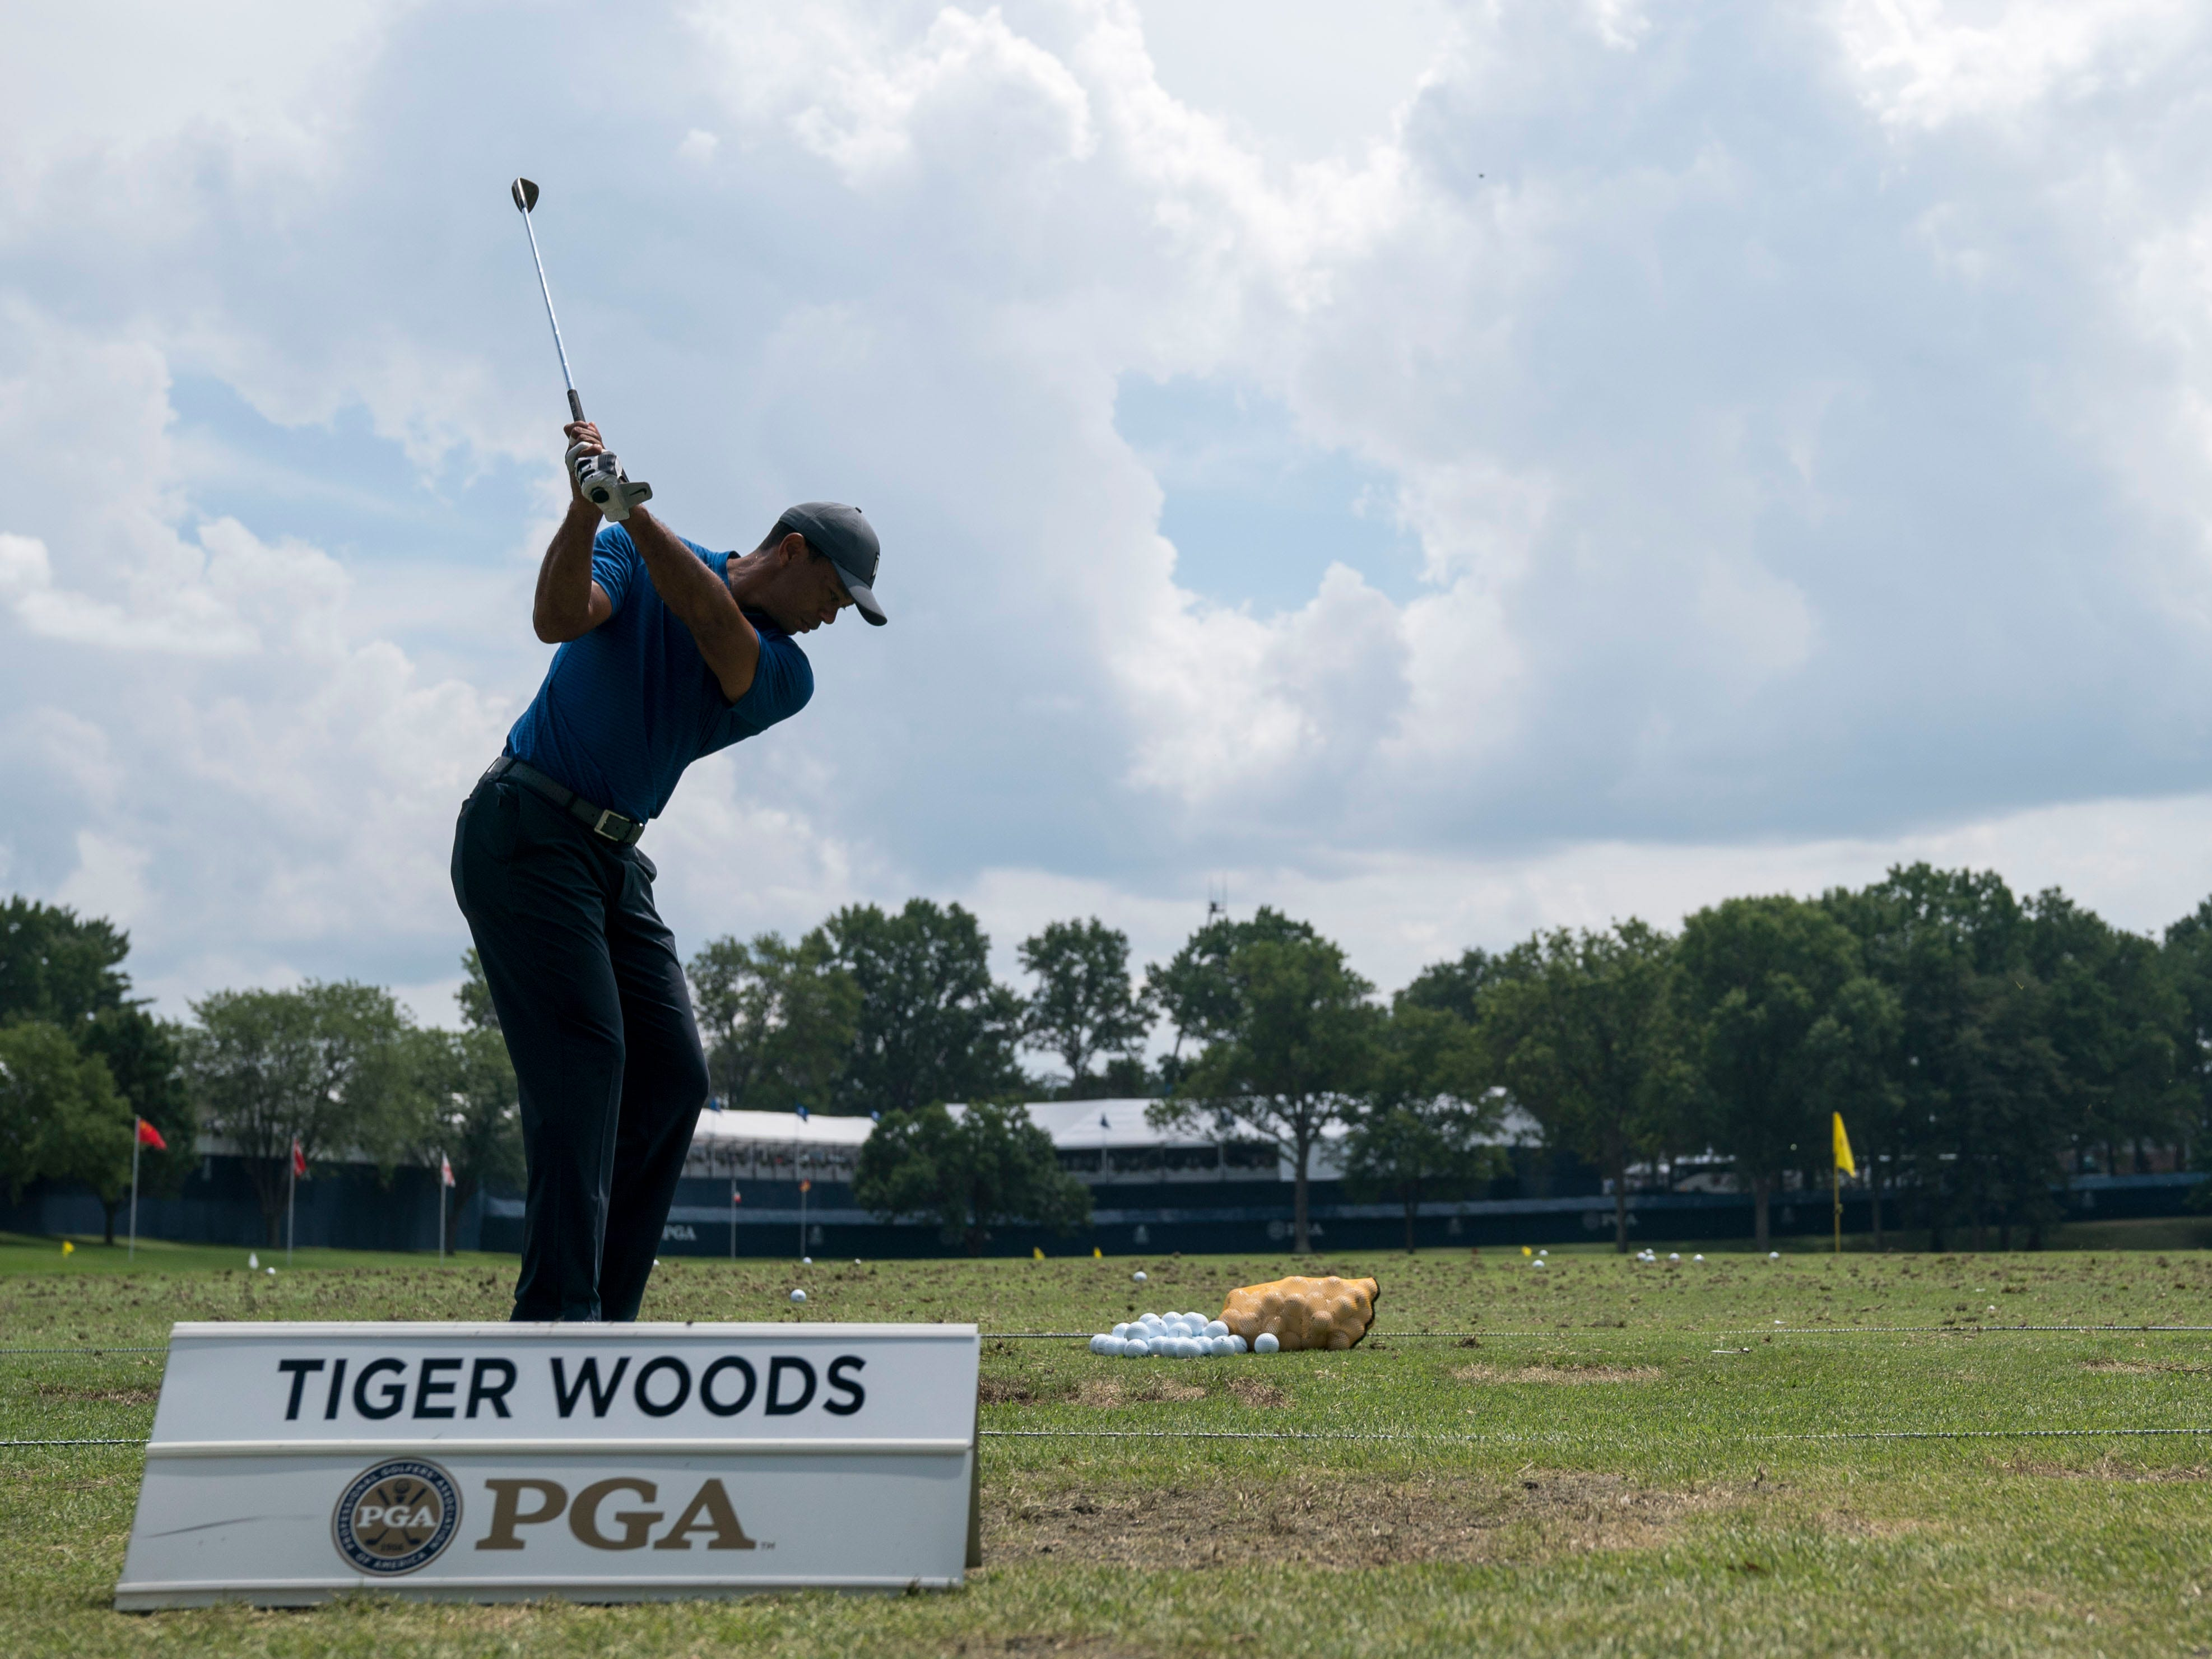 Tiger Woods warms up on the driving range.